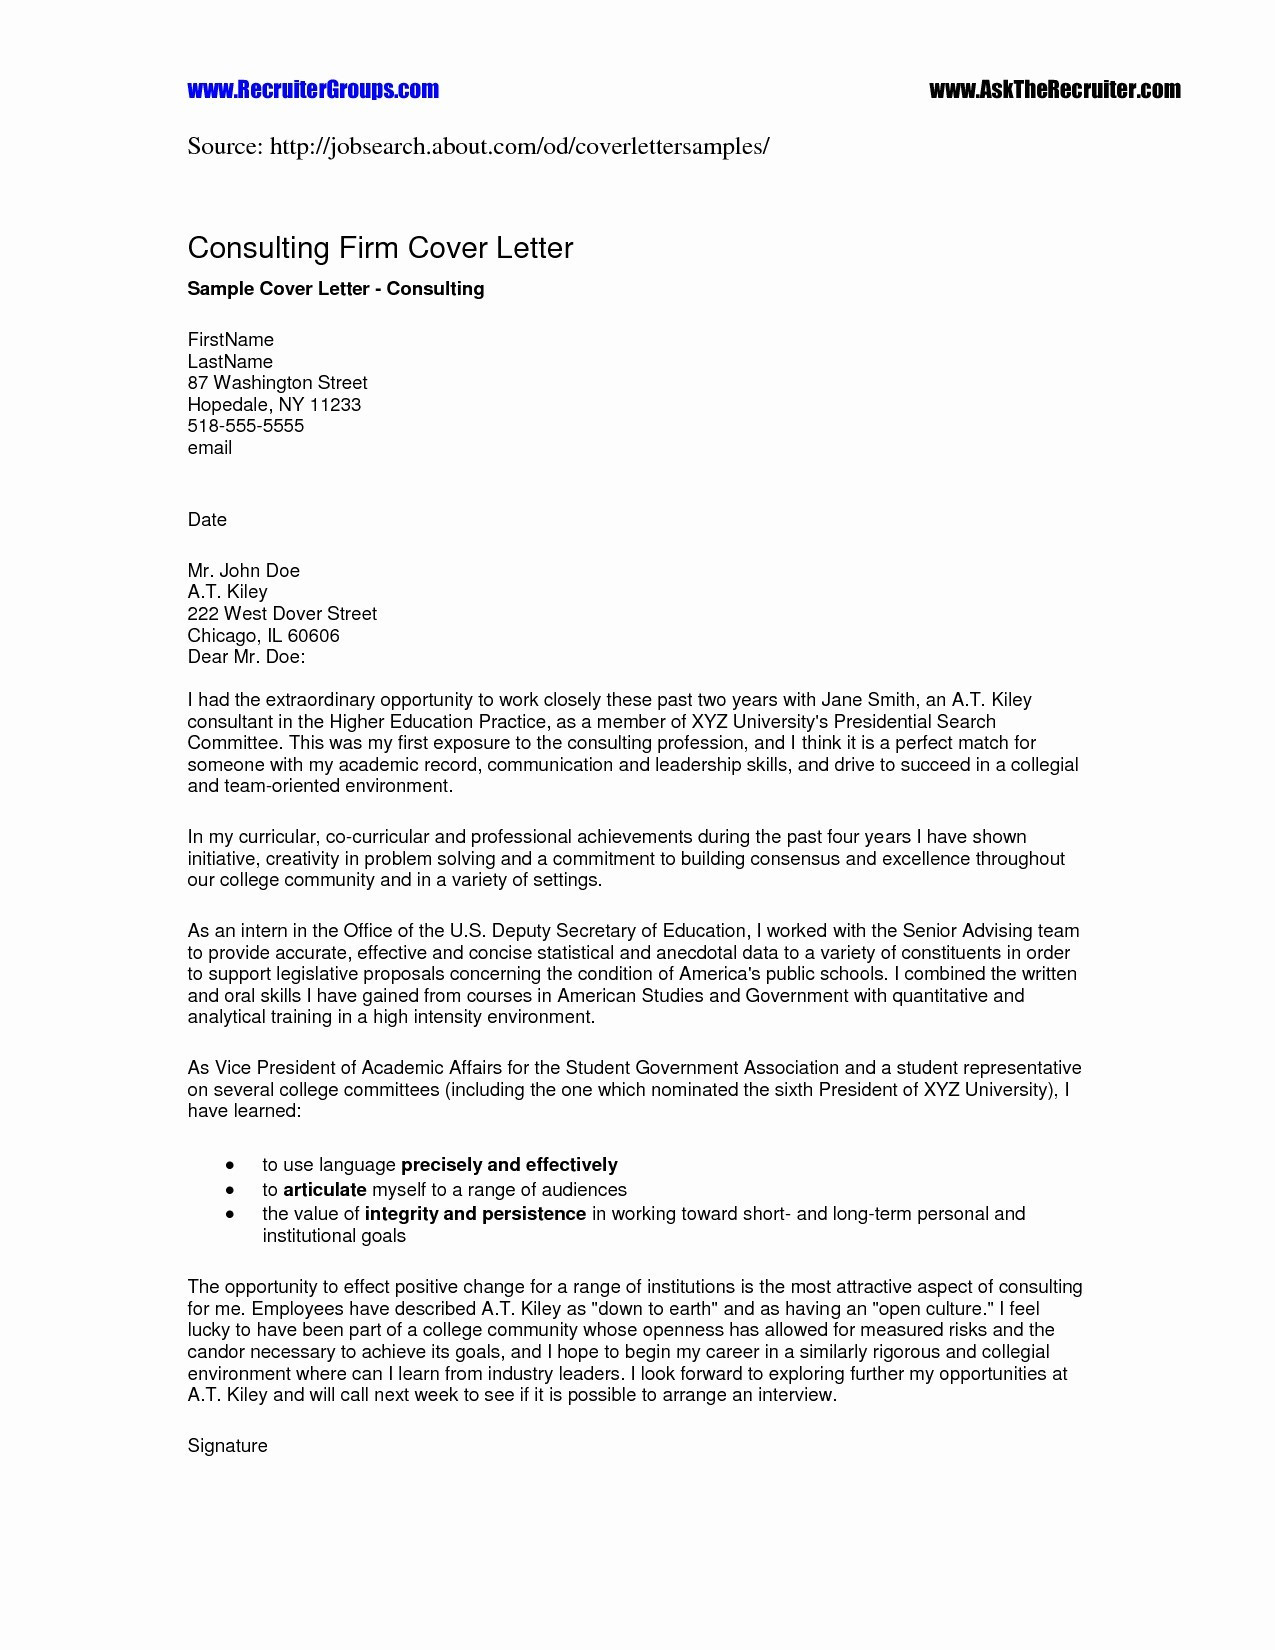 Free Cover Letter Template Google Docs - Resume Templates for Google Docs Inspirational Inspirational Free